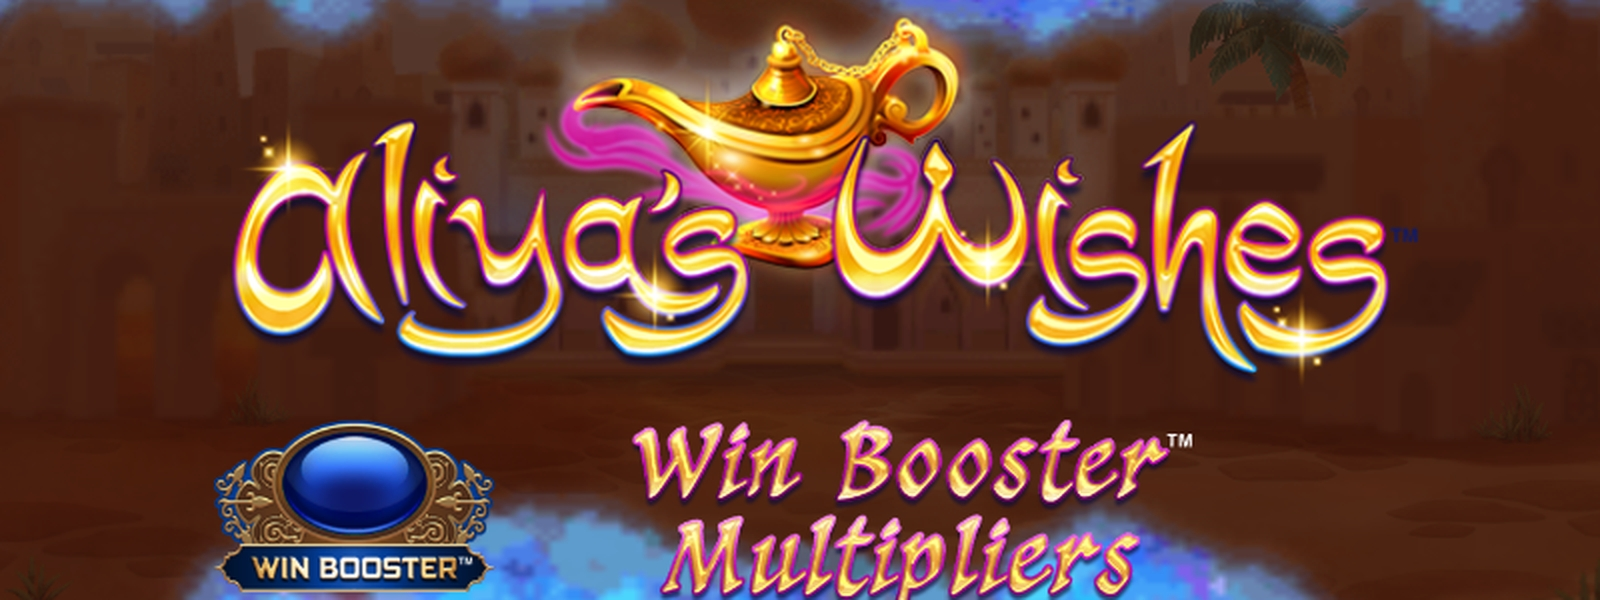 Se Aliyas Wishes Online Slot Demo Game, Fortune Factory Studios